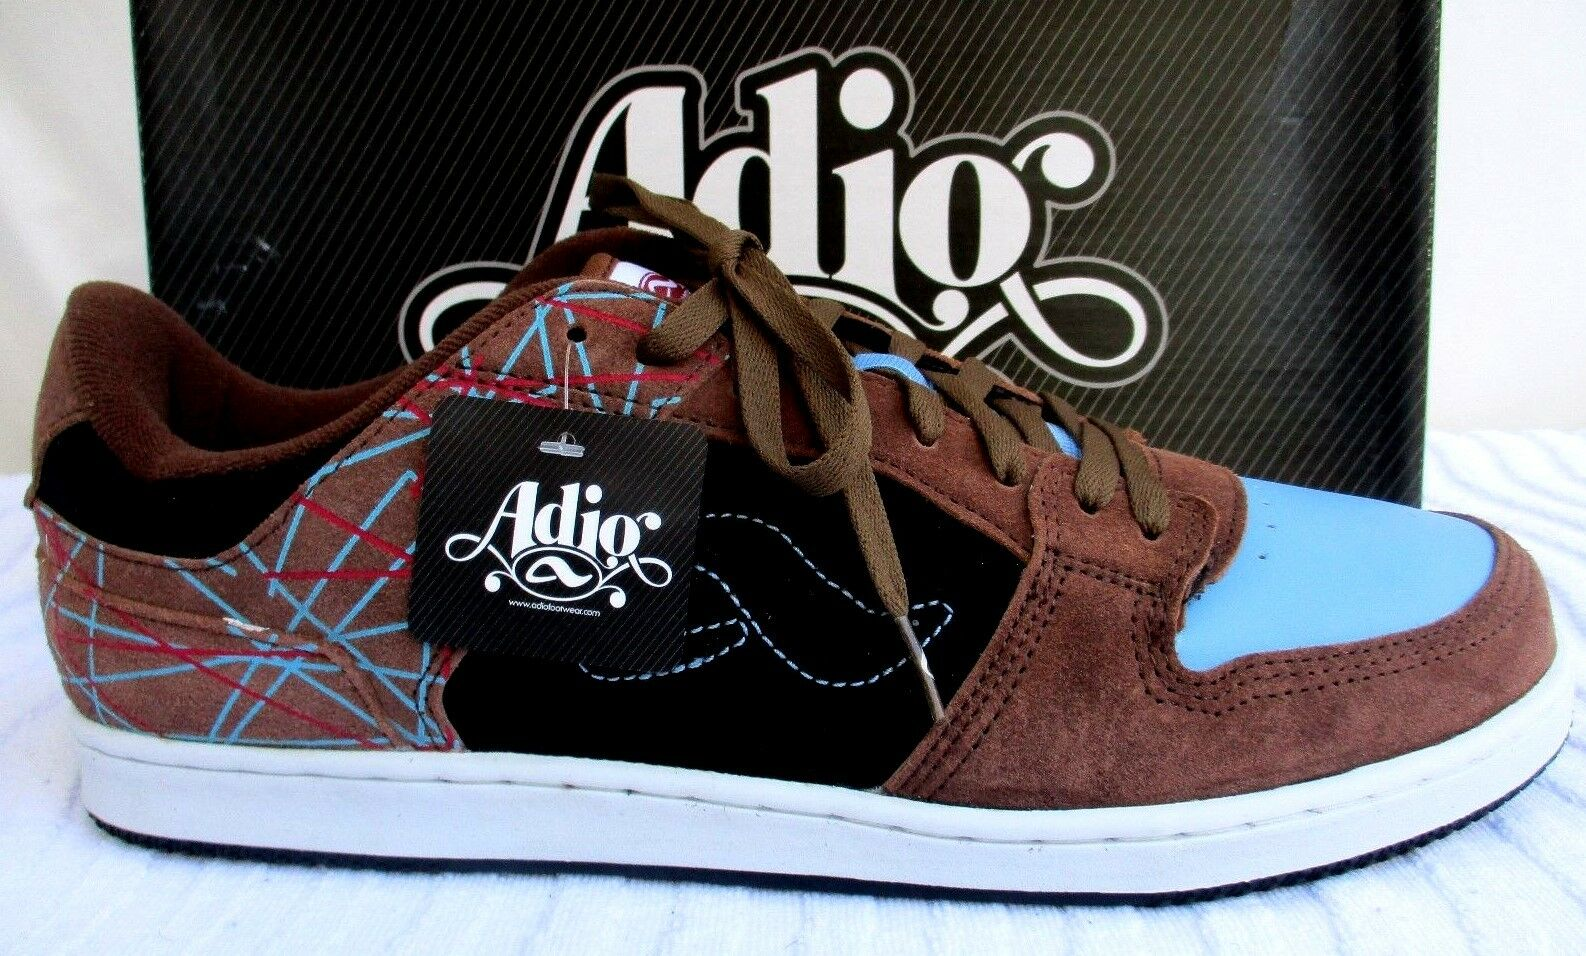 ADIO..MONROE..SUEDE LEATHER..SKATE BOARD..Schuhe..NEW in BOX..sz 14 14 BOX..sz 7fc4d5